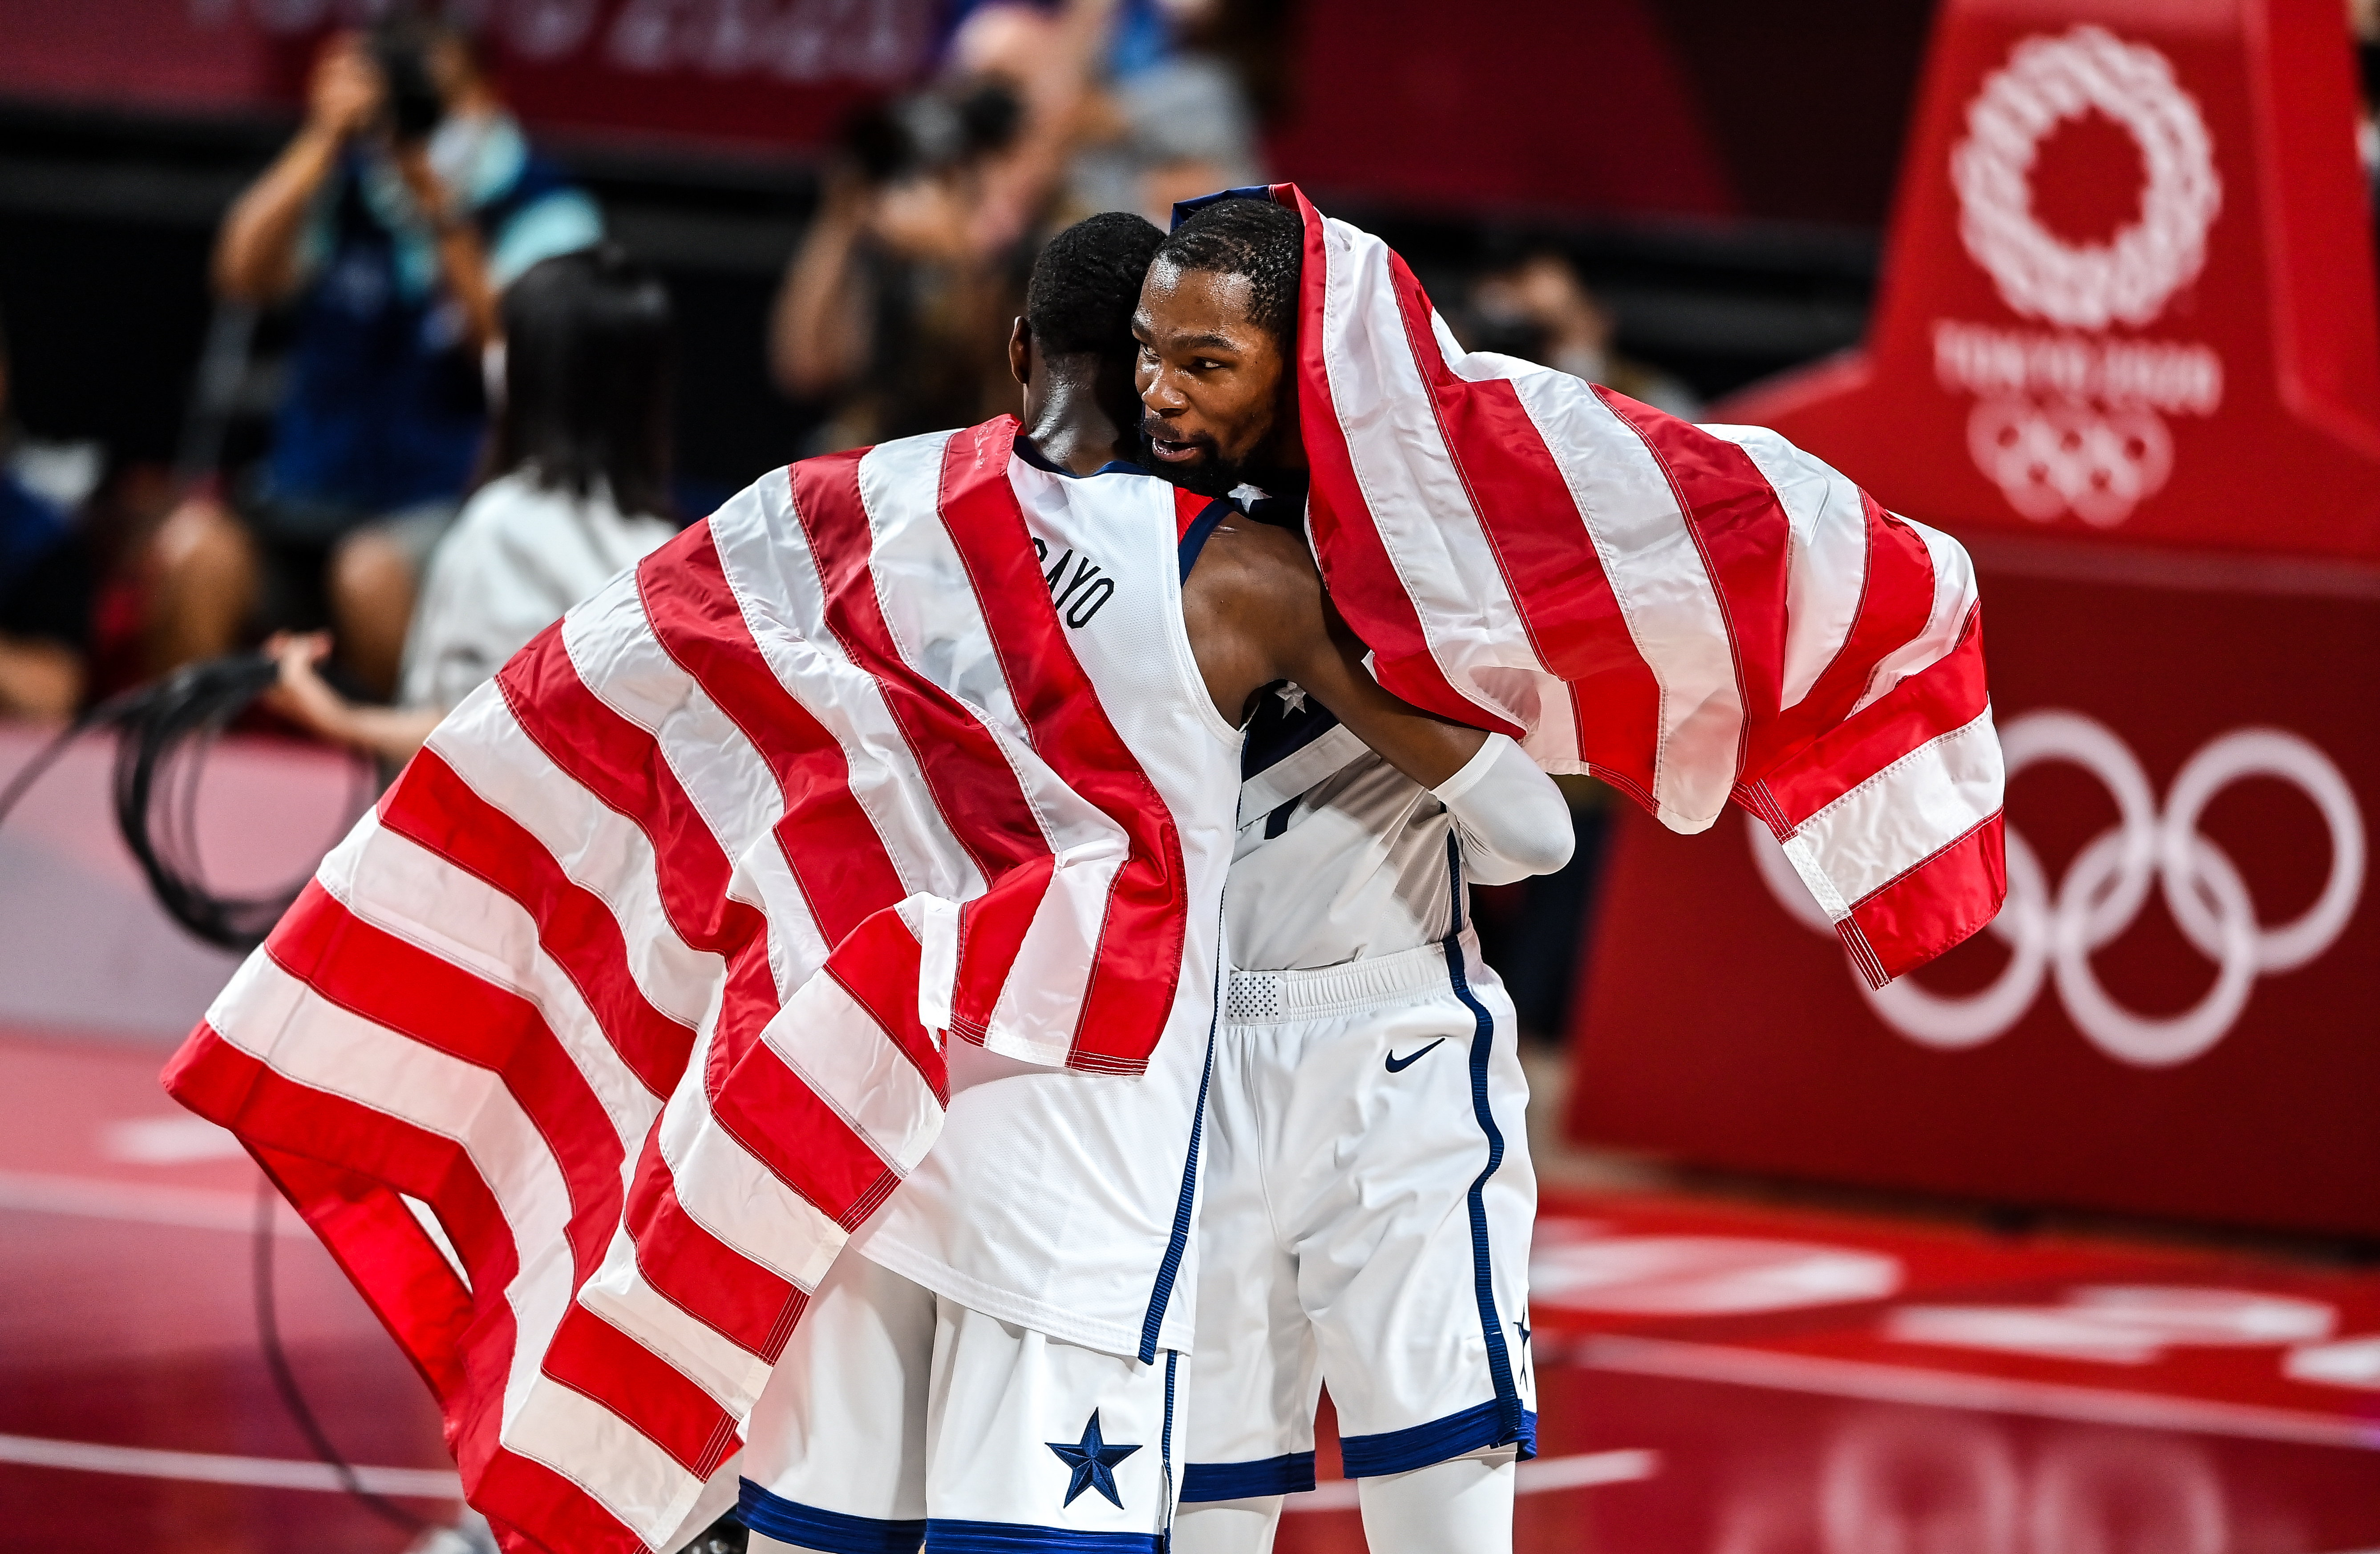 Tokyo 2020 Olympic Games - Day 15 - Basketball